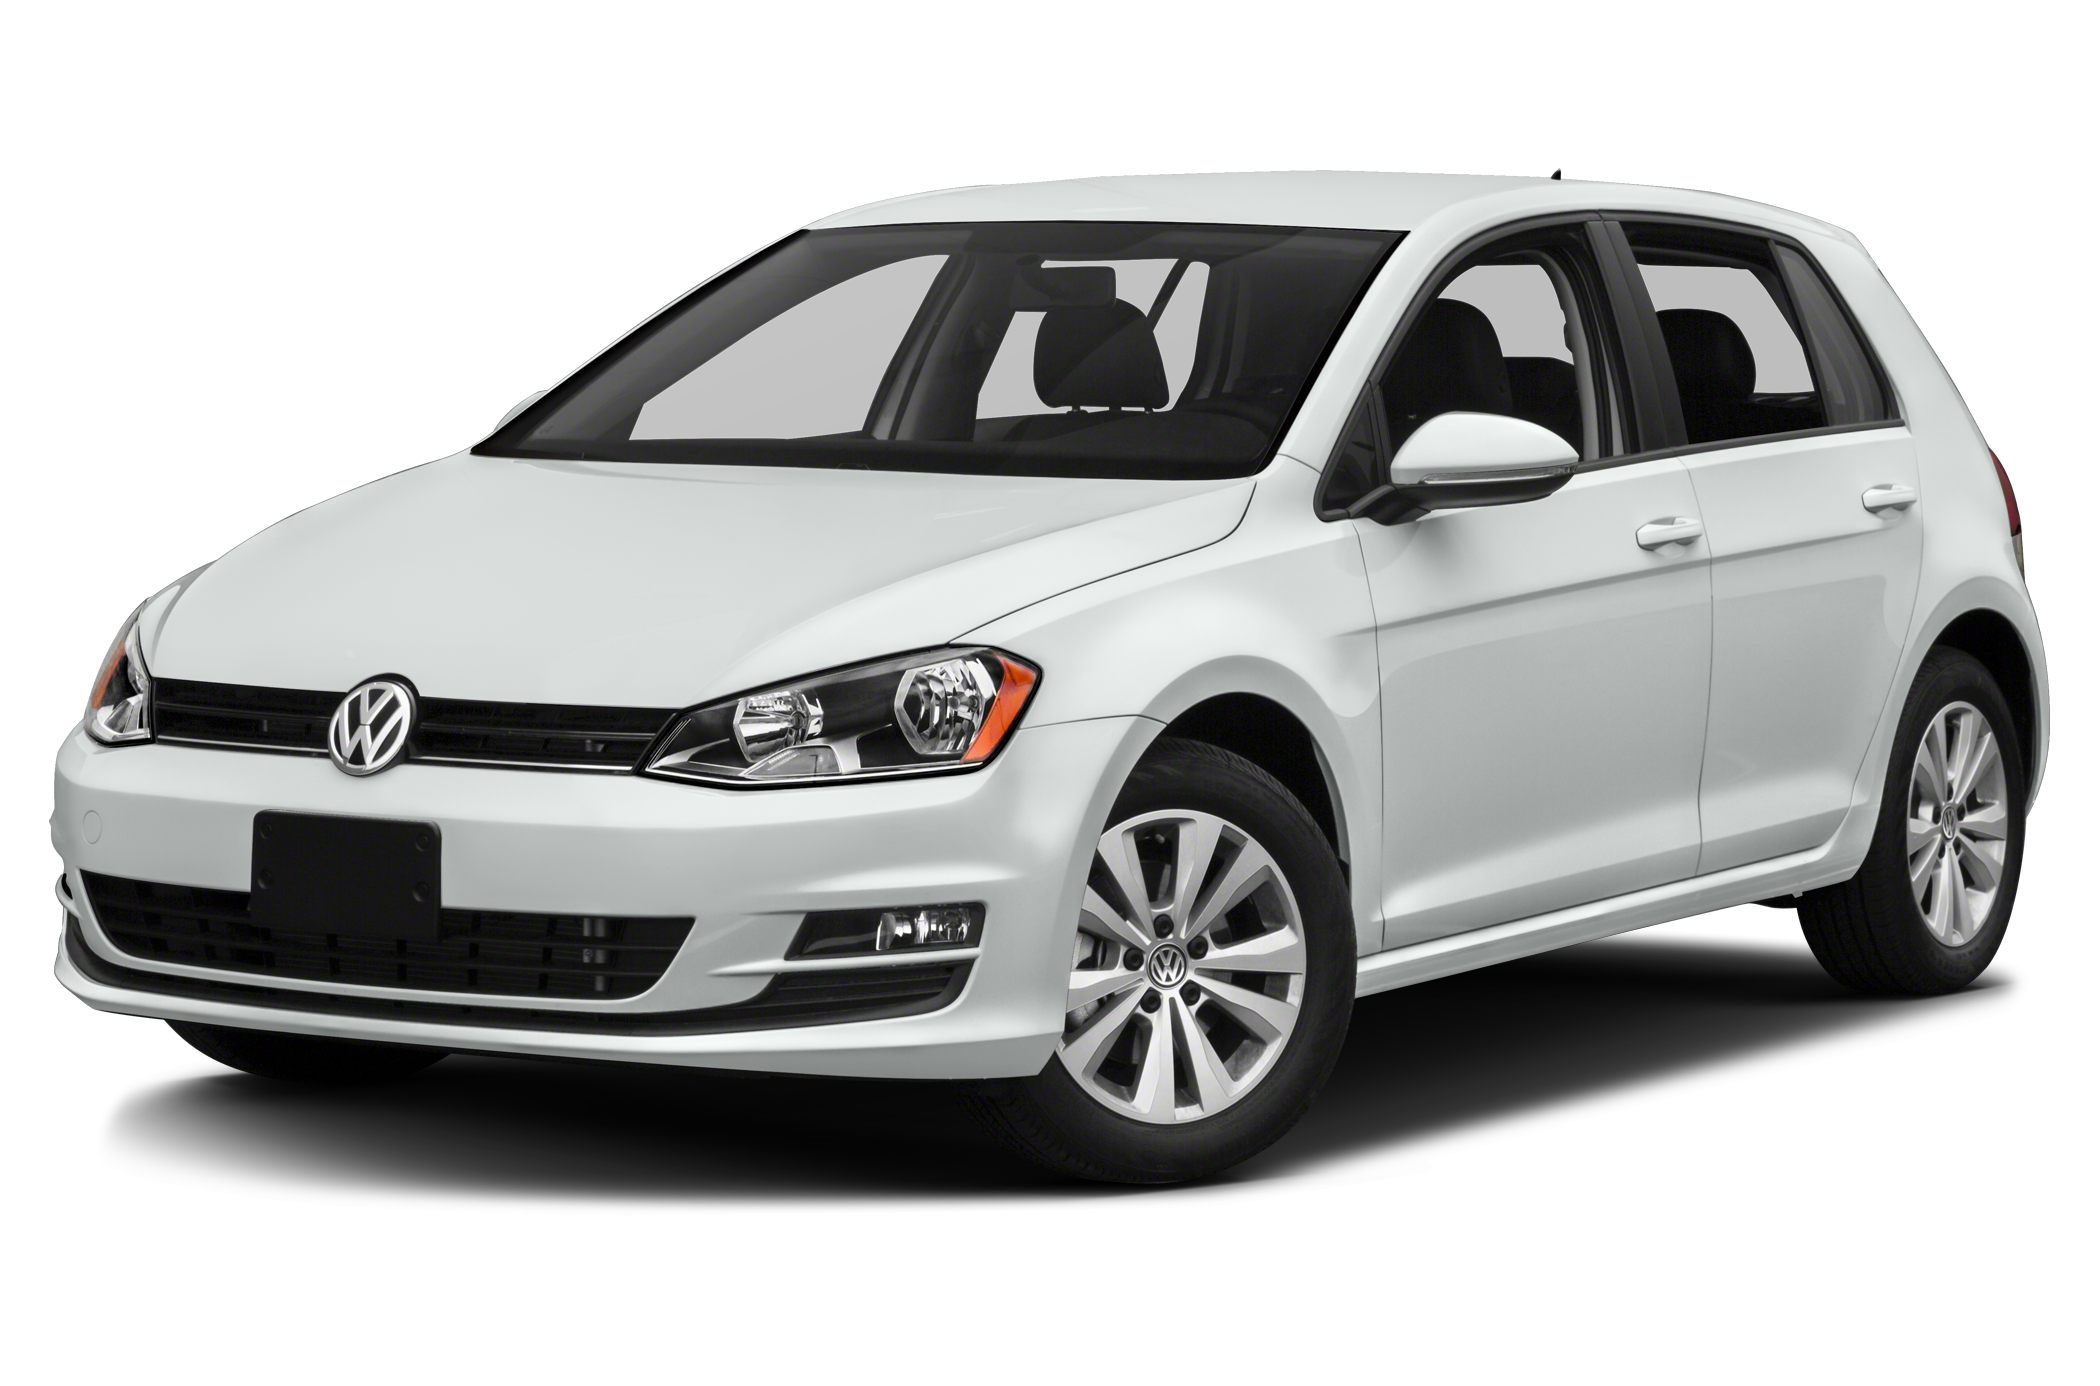 Image result for volkswagen golf